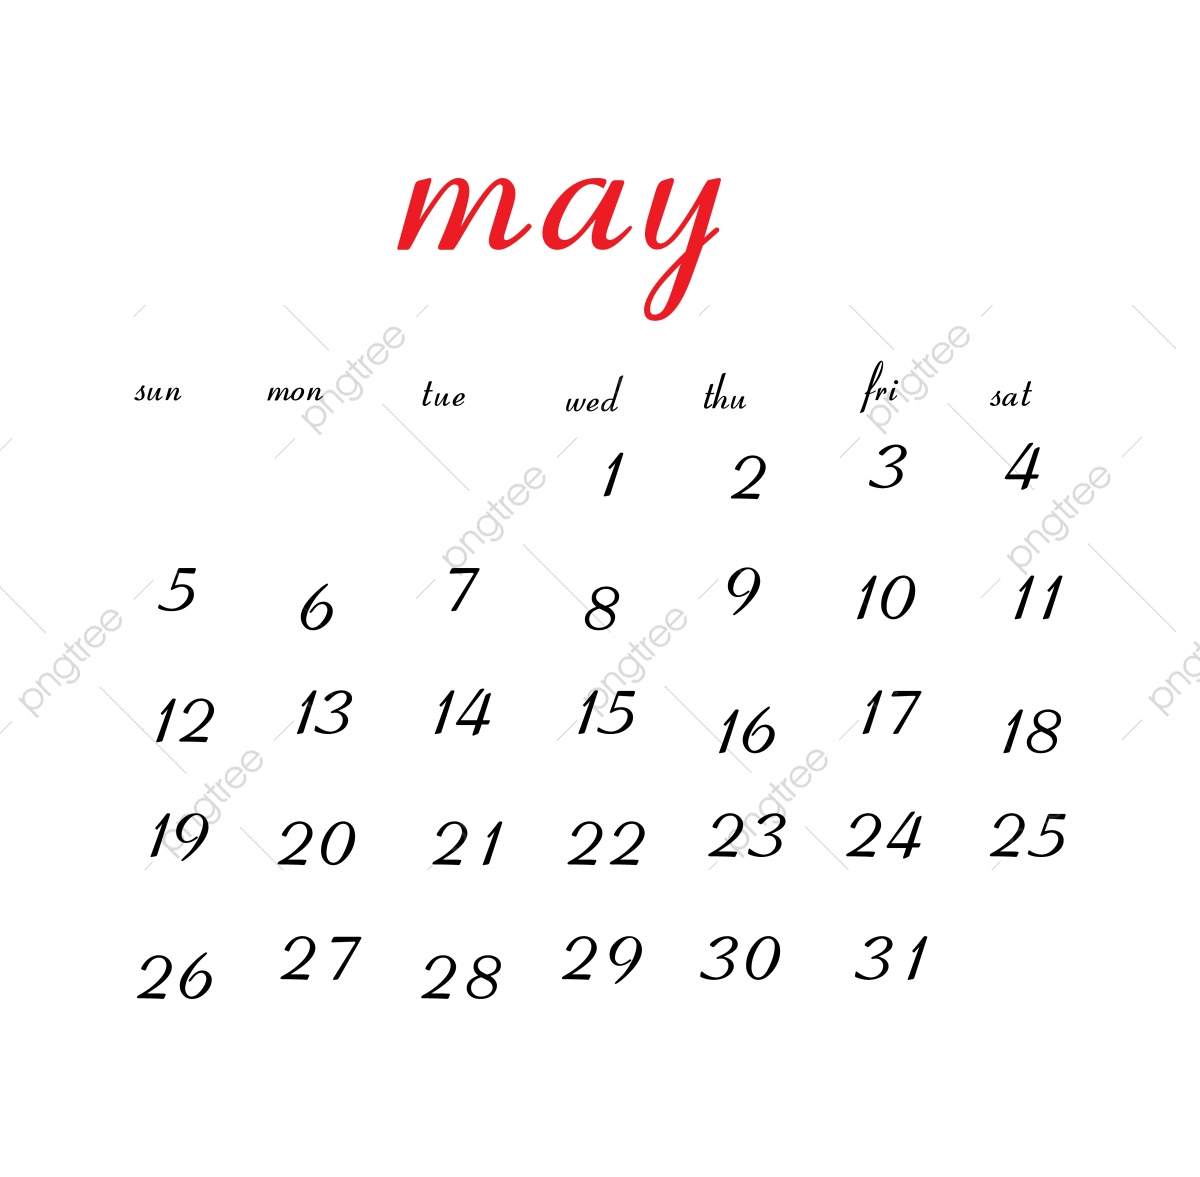 May 2019 Calendar Calendar Clean White Png And Vector